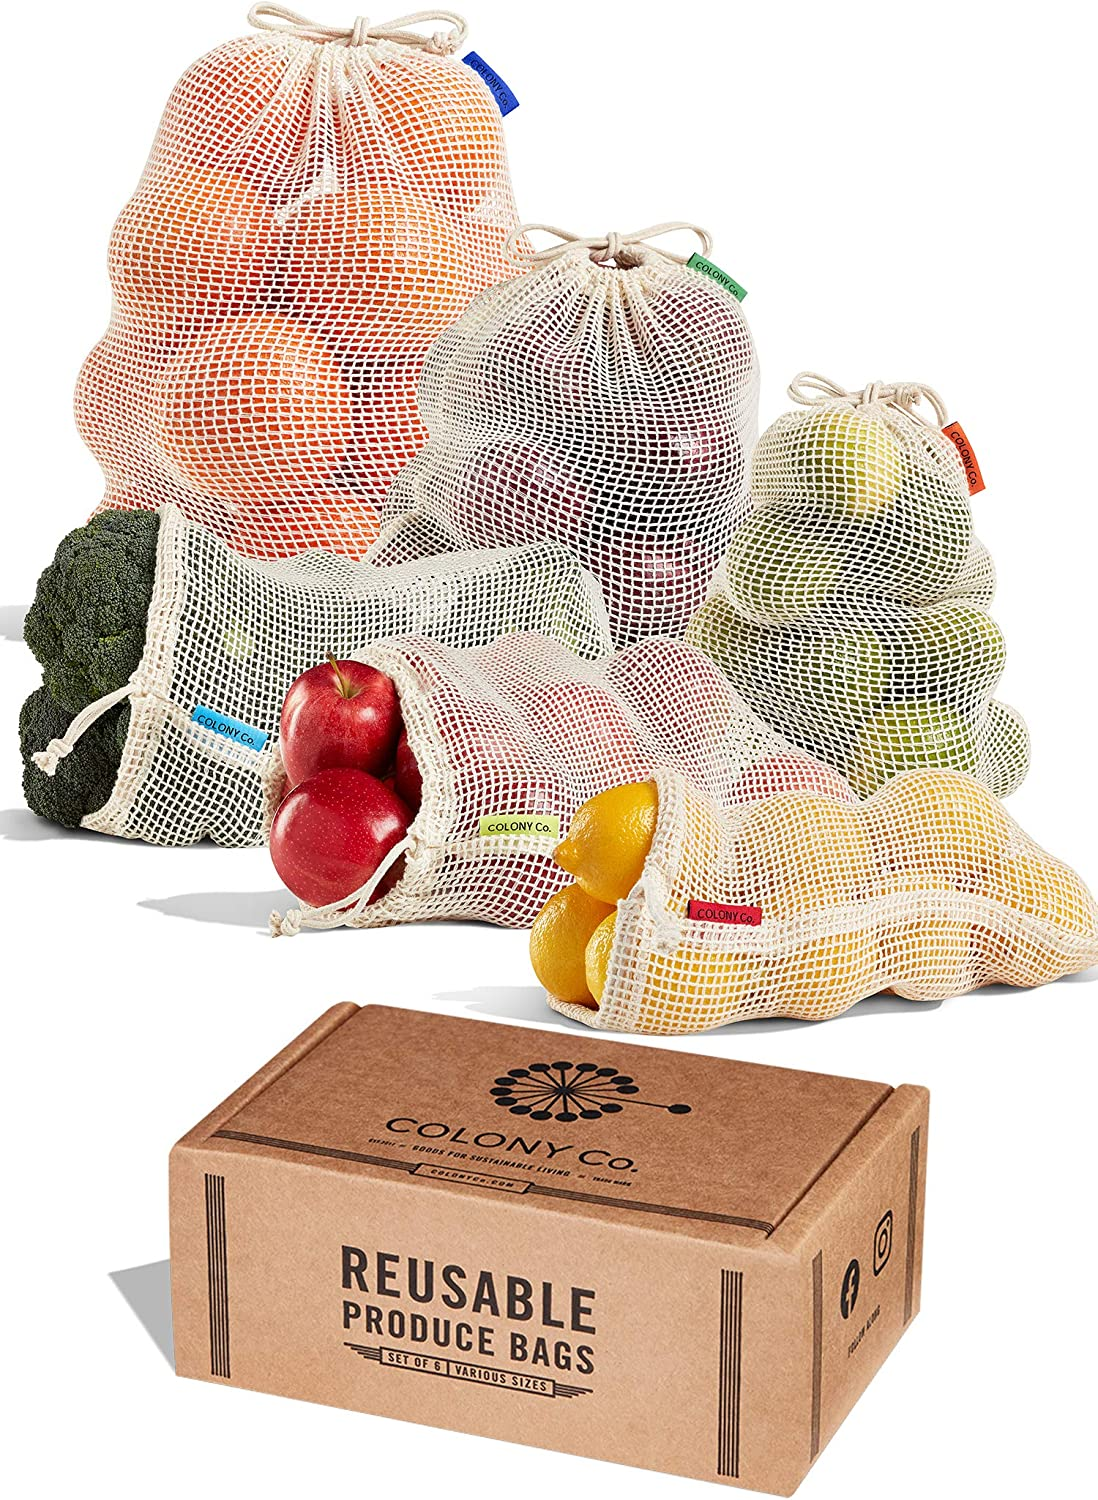 Reusable Produce Bags, Organic Cotton Mesh, Washable, Tare Weight Label